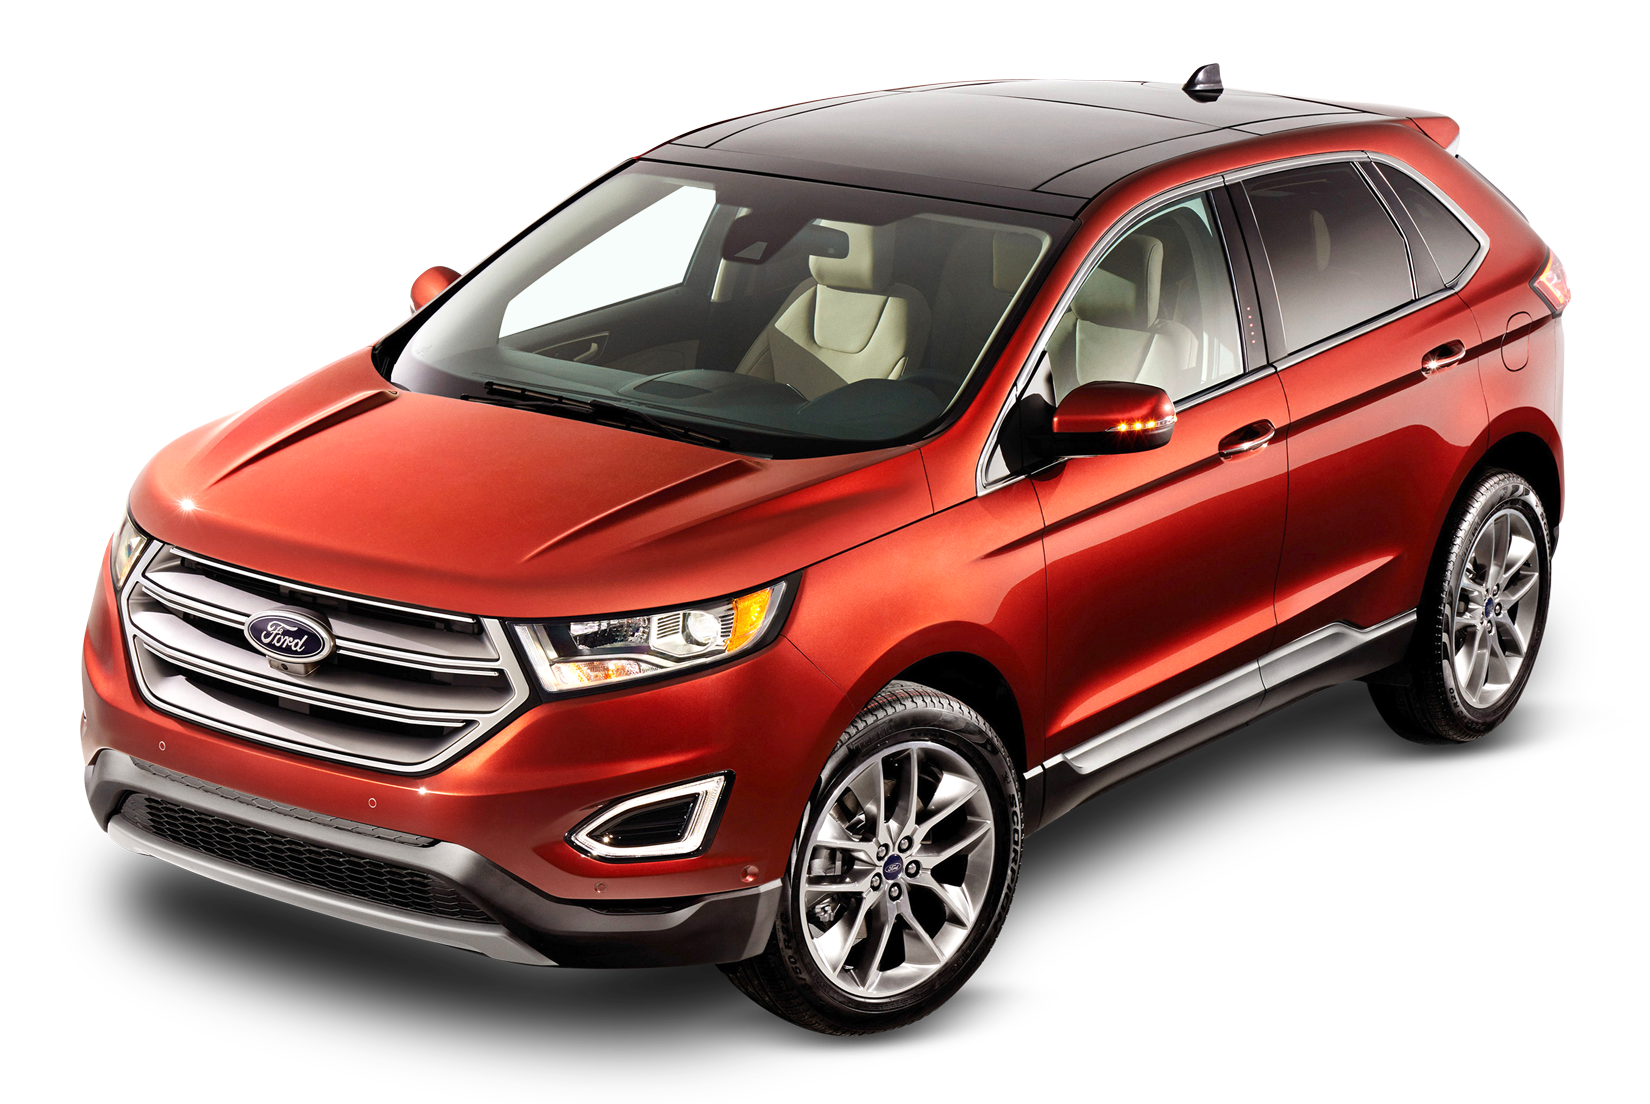 Ford Edge Red Car Ford Suv Red Car Ford Edge